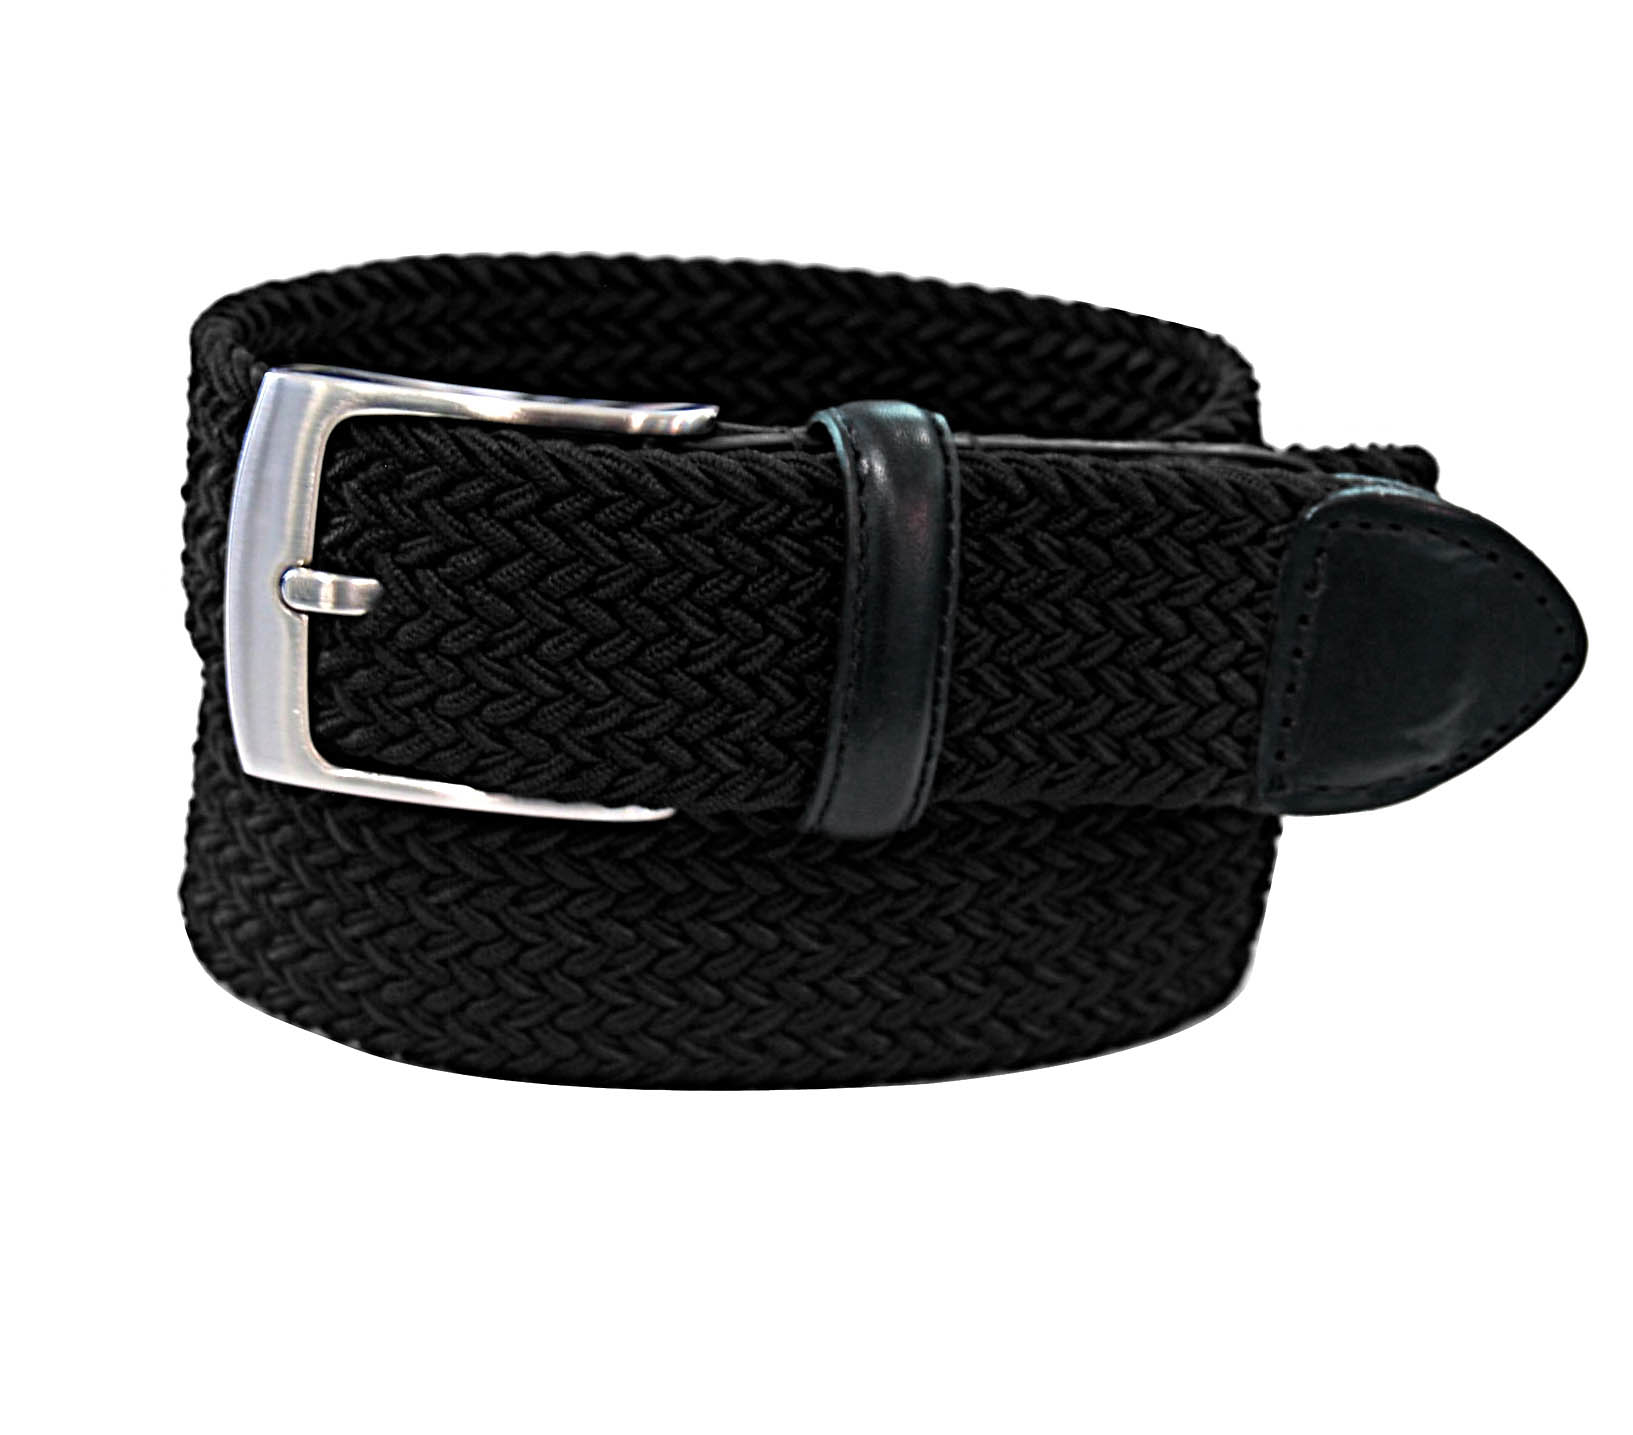 AFONiE Stretch Belt with Silver Finish Buckle - Black, Small 57aa3b3039f7e346450e90a6